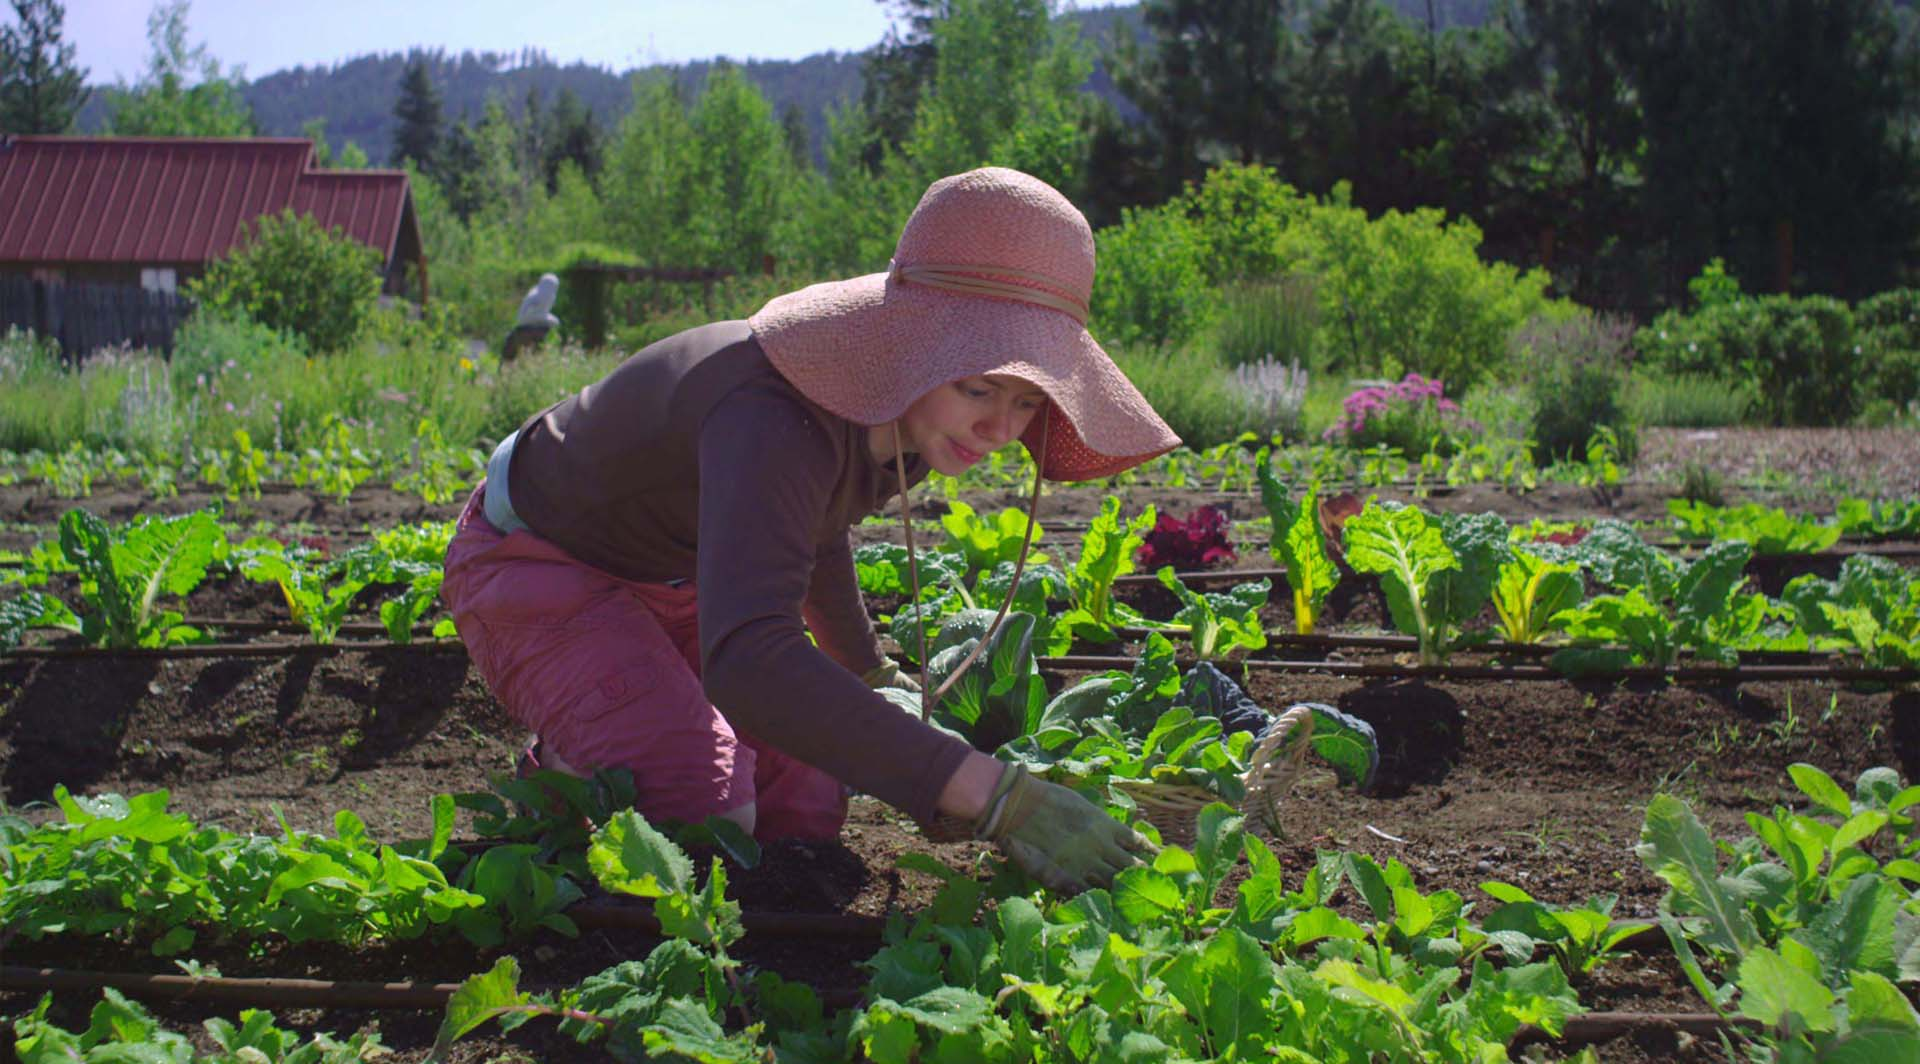 Go Green – Stay Safe: Keep your growing season 'fruitful' by sticking to these simple tips to avoid injuries!